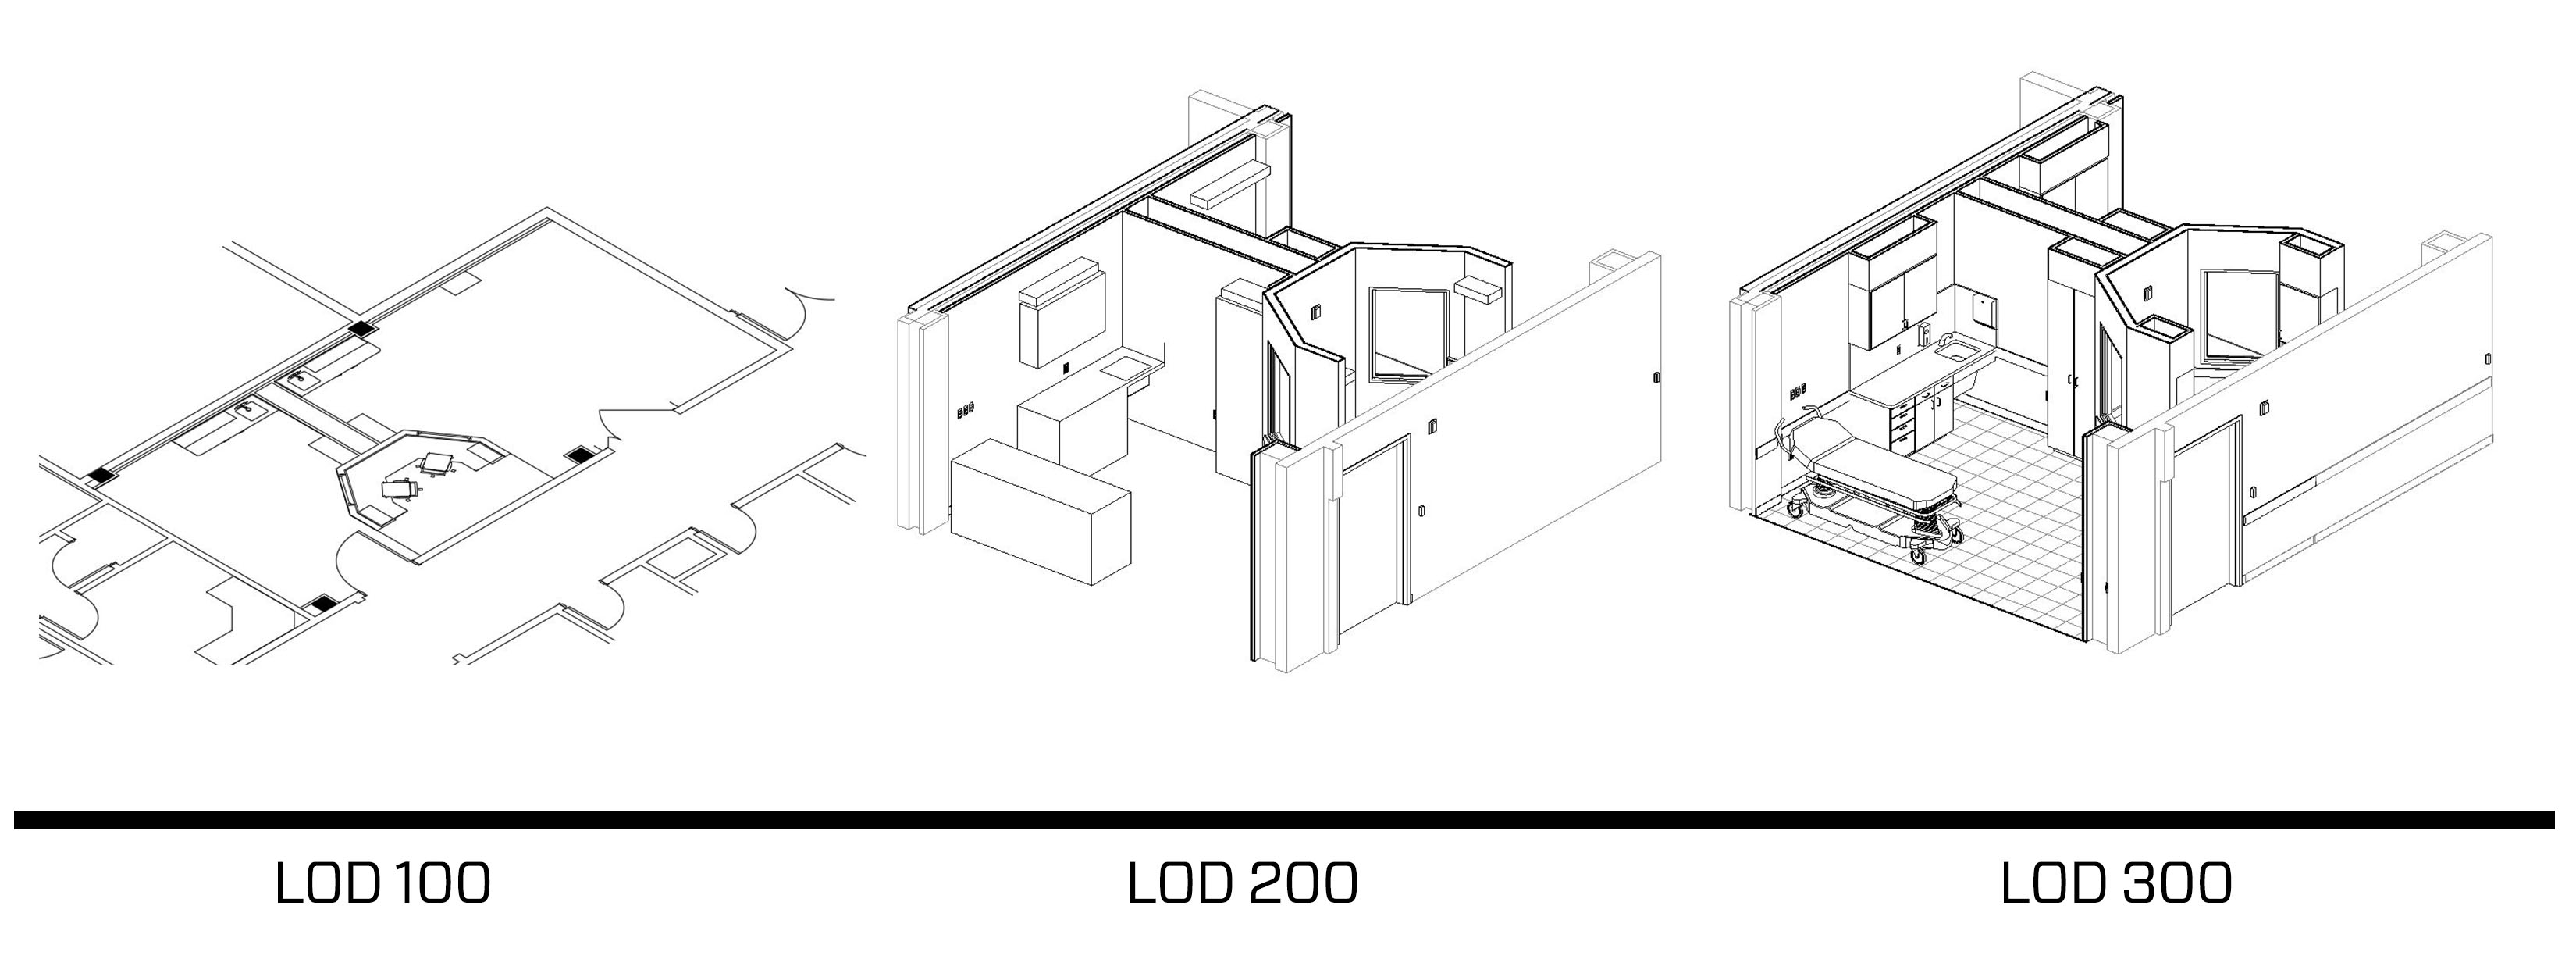 Revit LOD & Contracts-pics